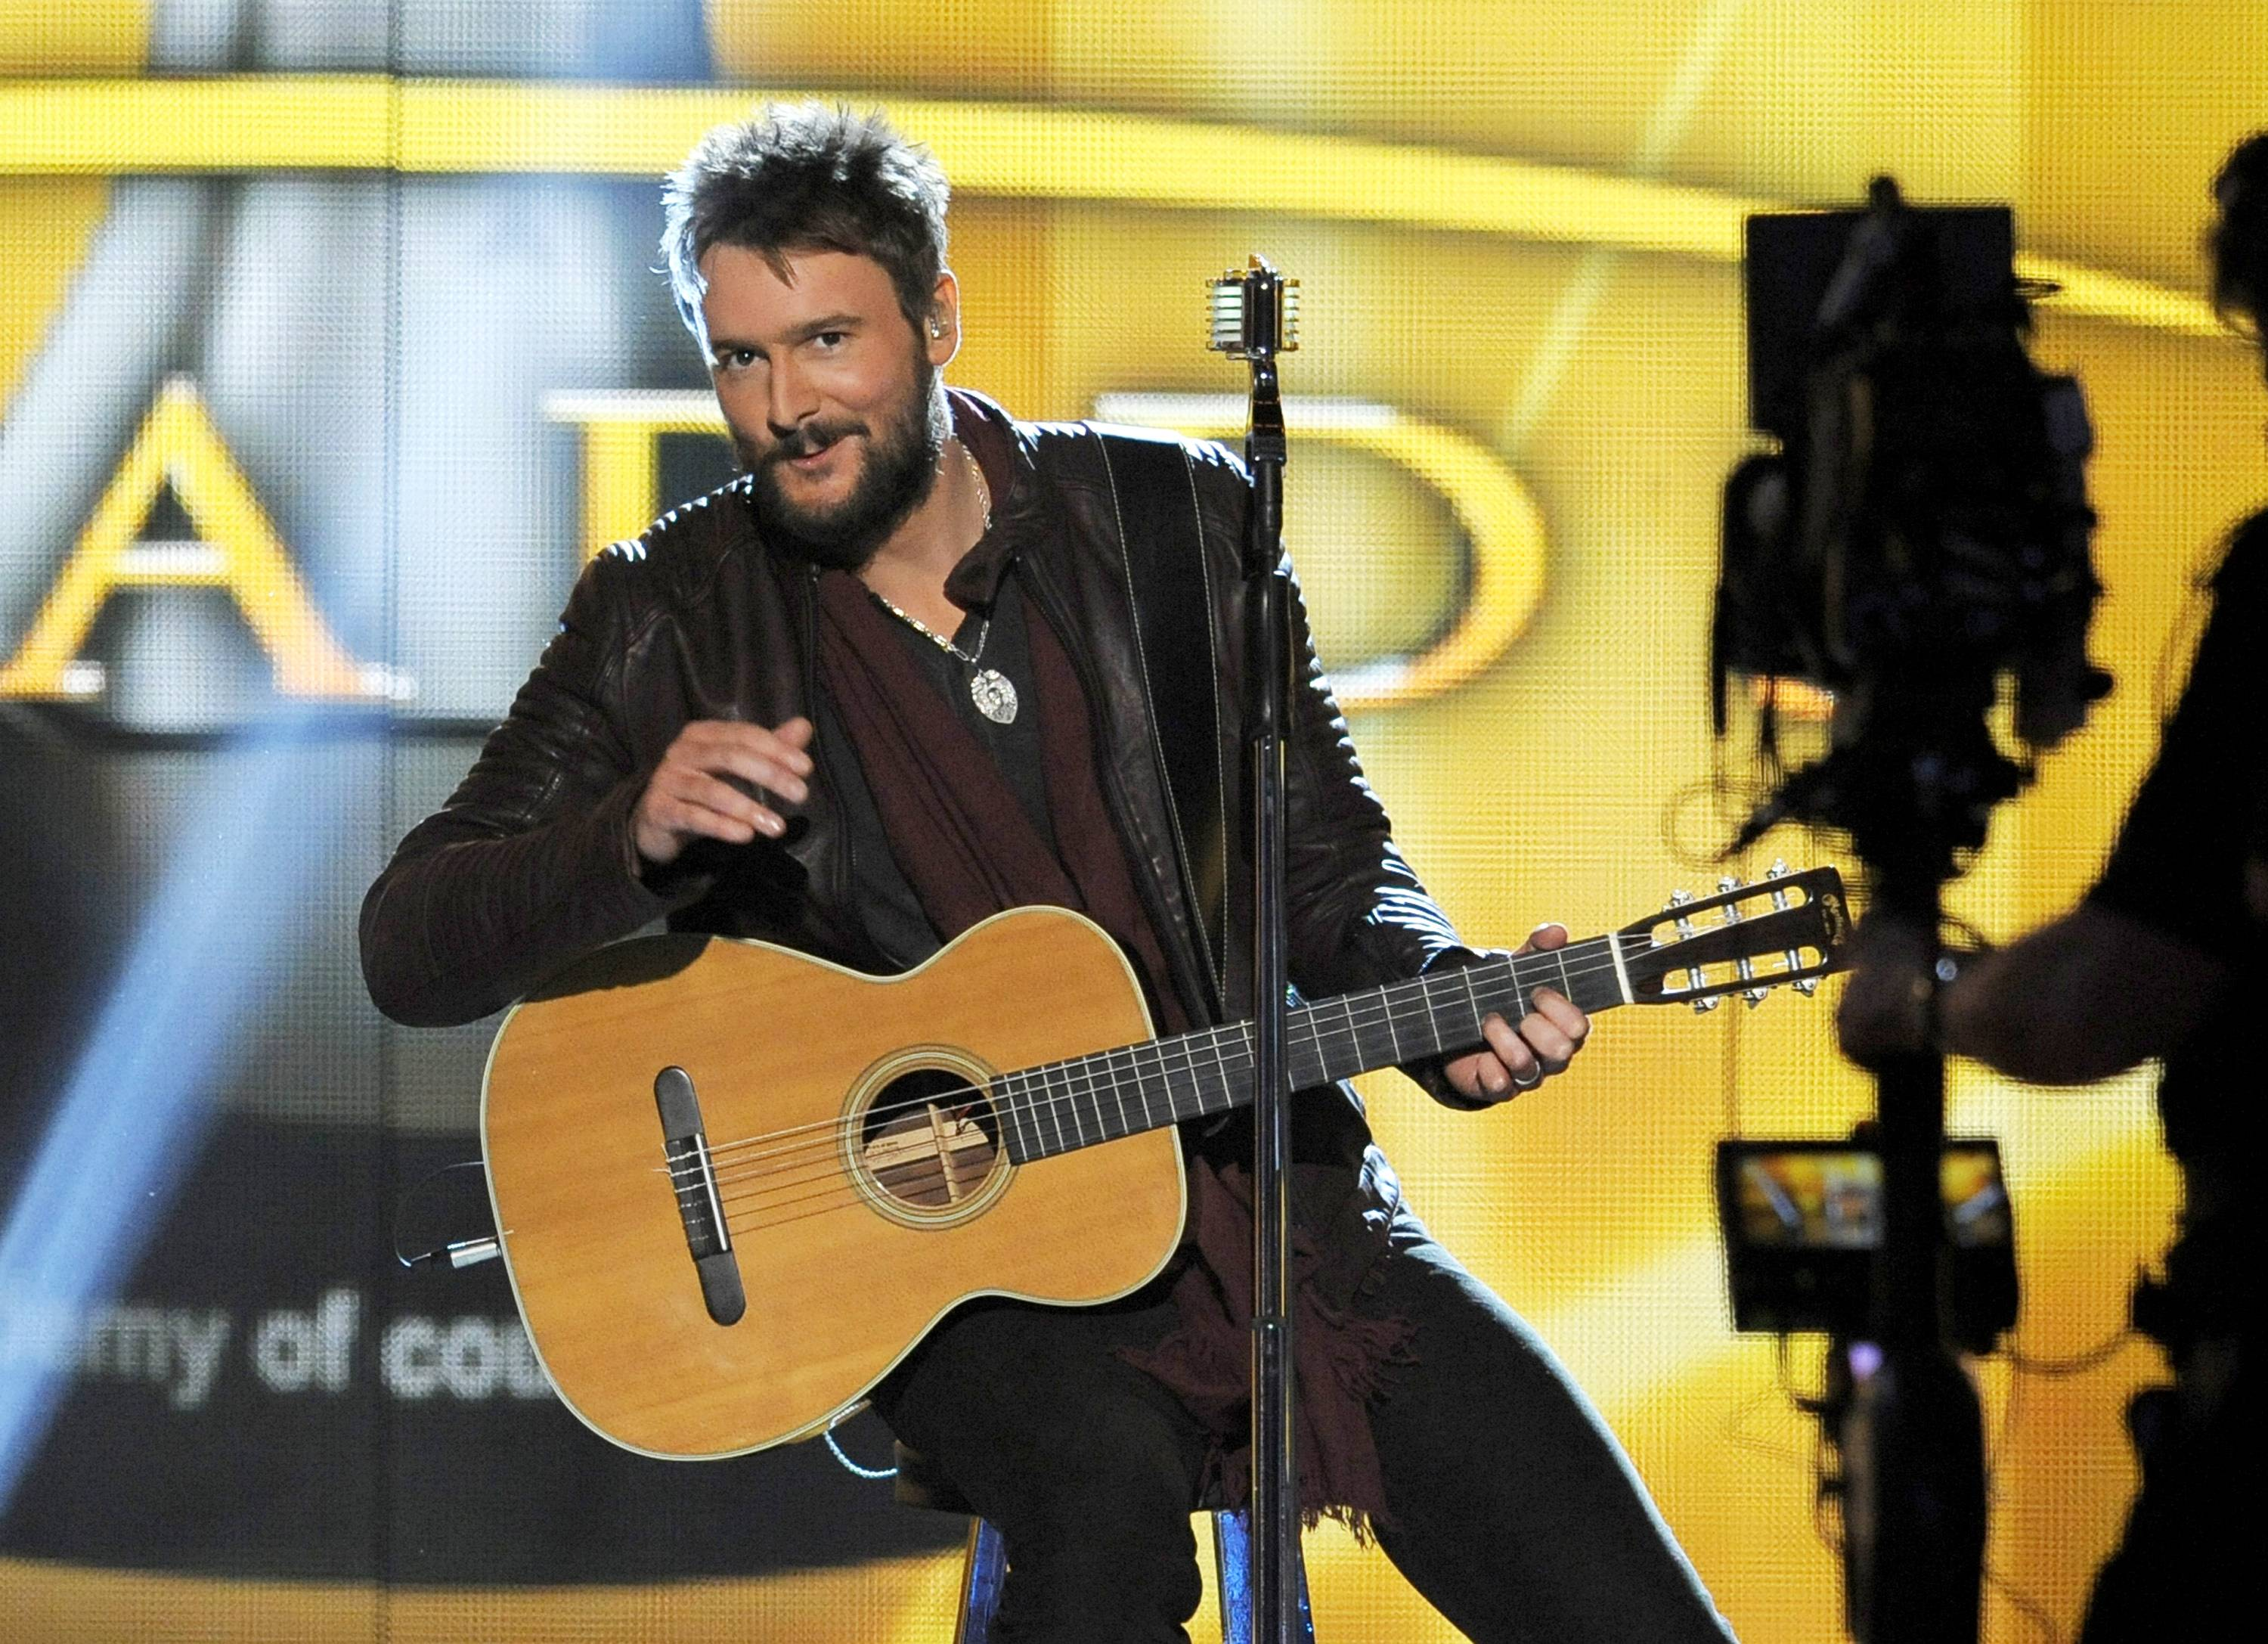 Eric Church brings his own surprise to CMT Awards